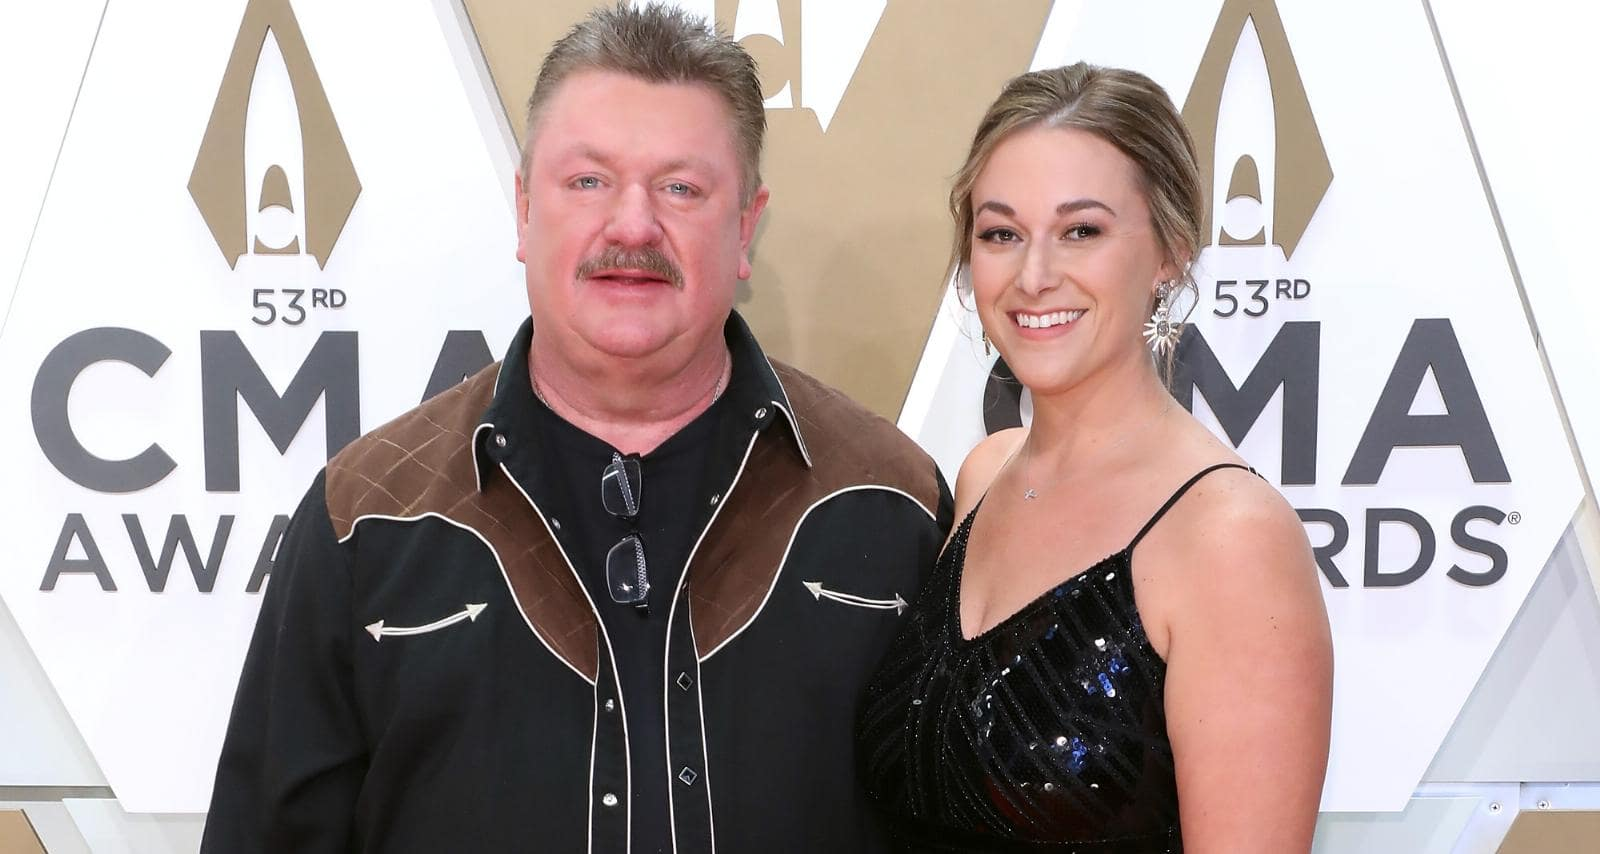 Tara Terpening Diffie Wiki, Age, Parents, Family, Kids, Wedding and Facts About Joe Diffie's Fourth Wife